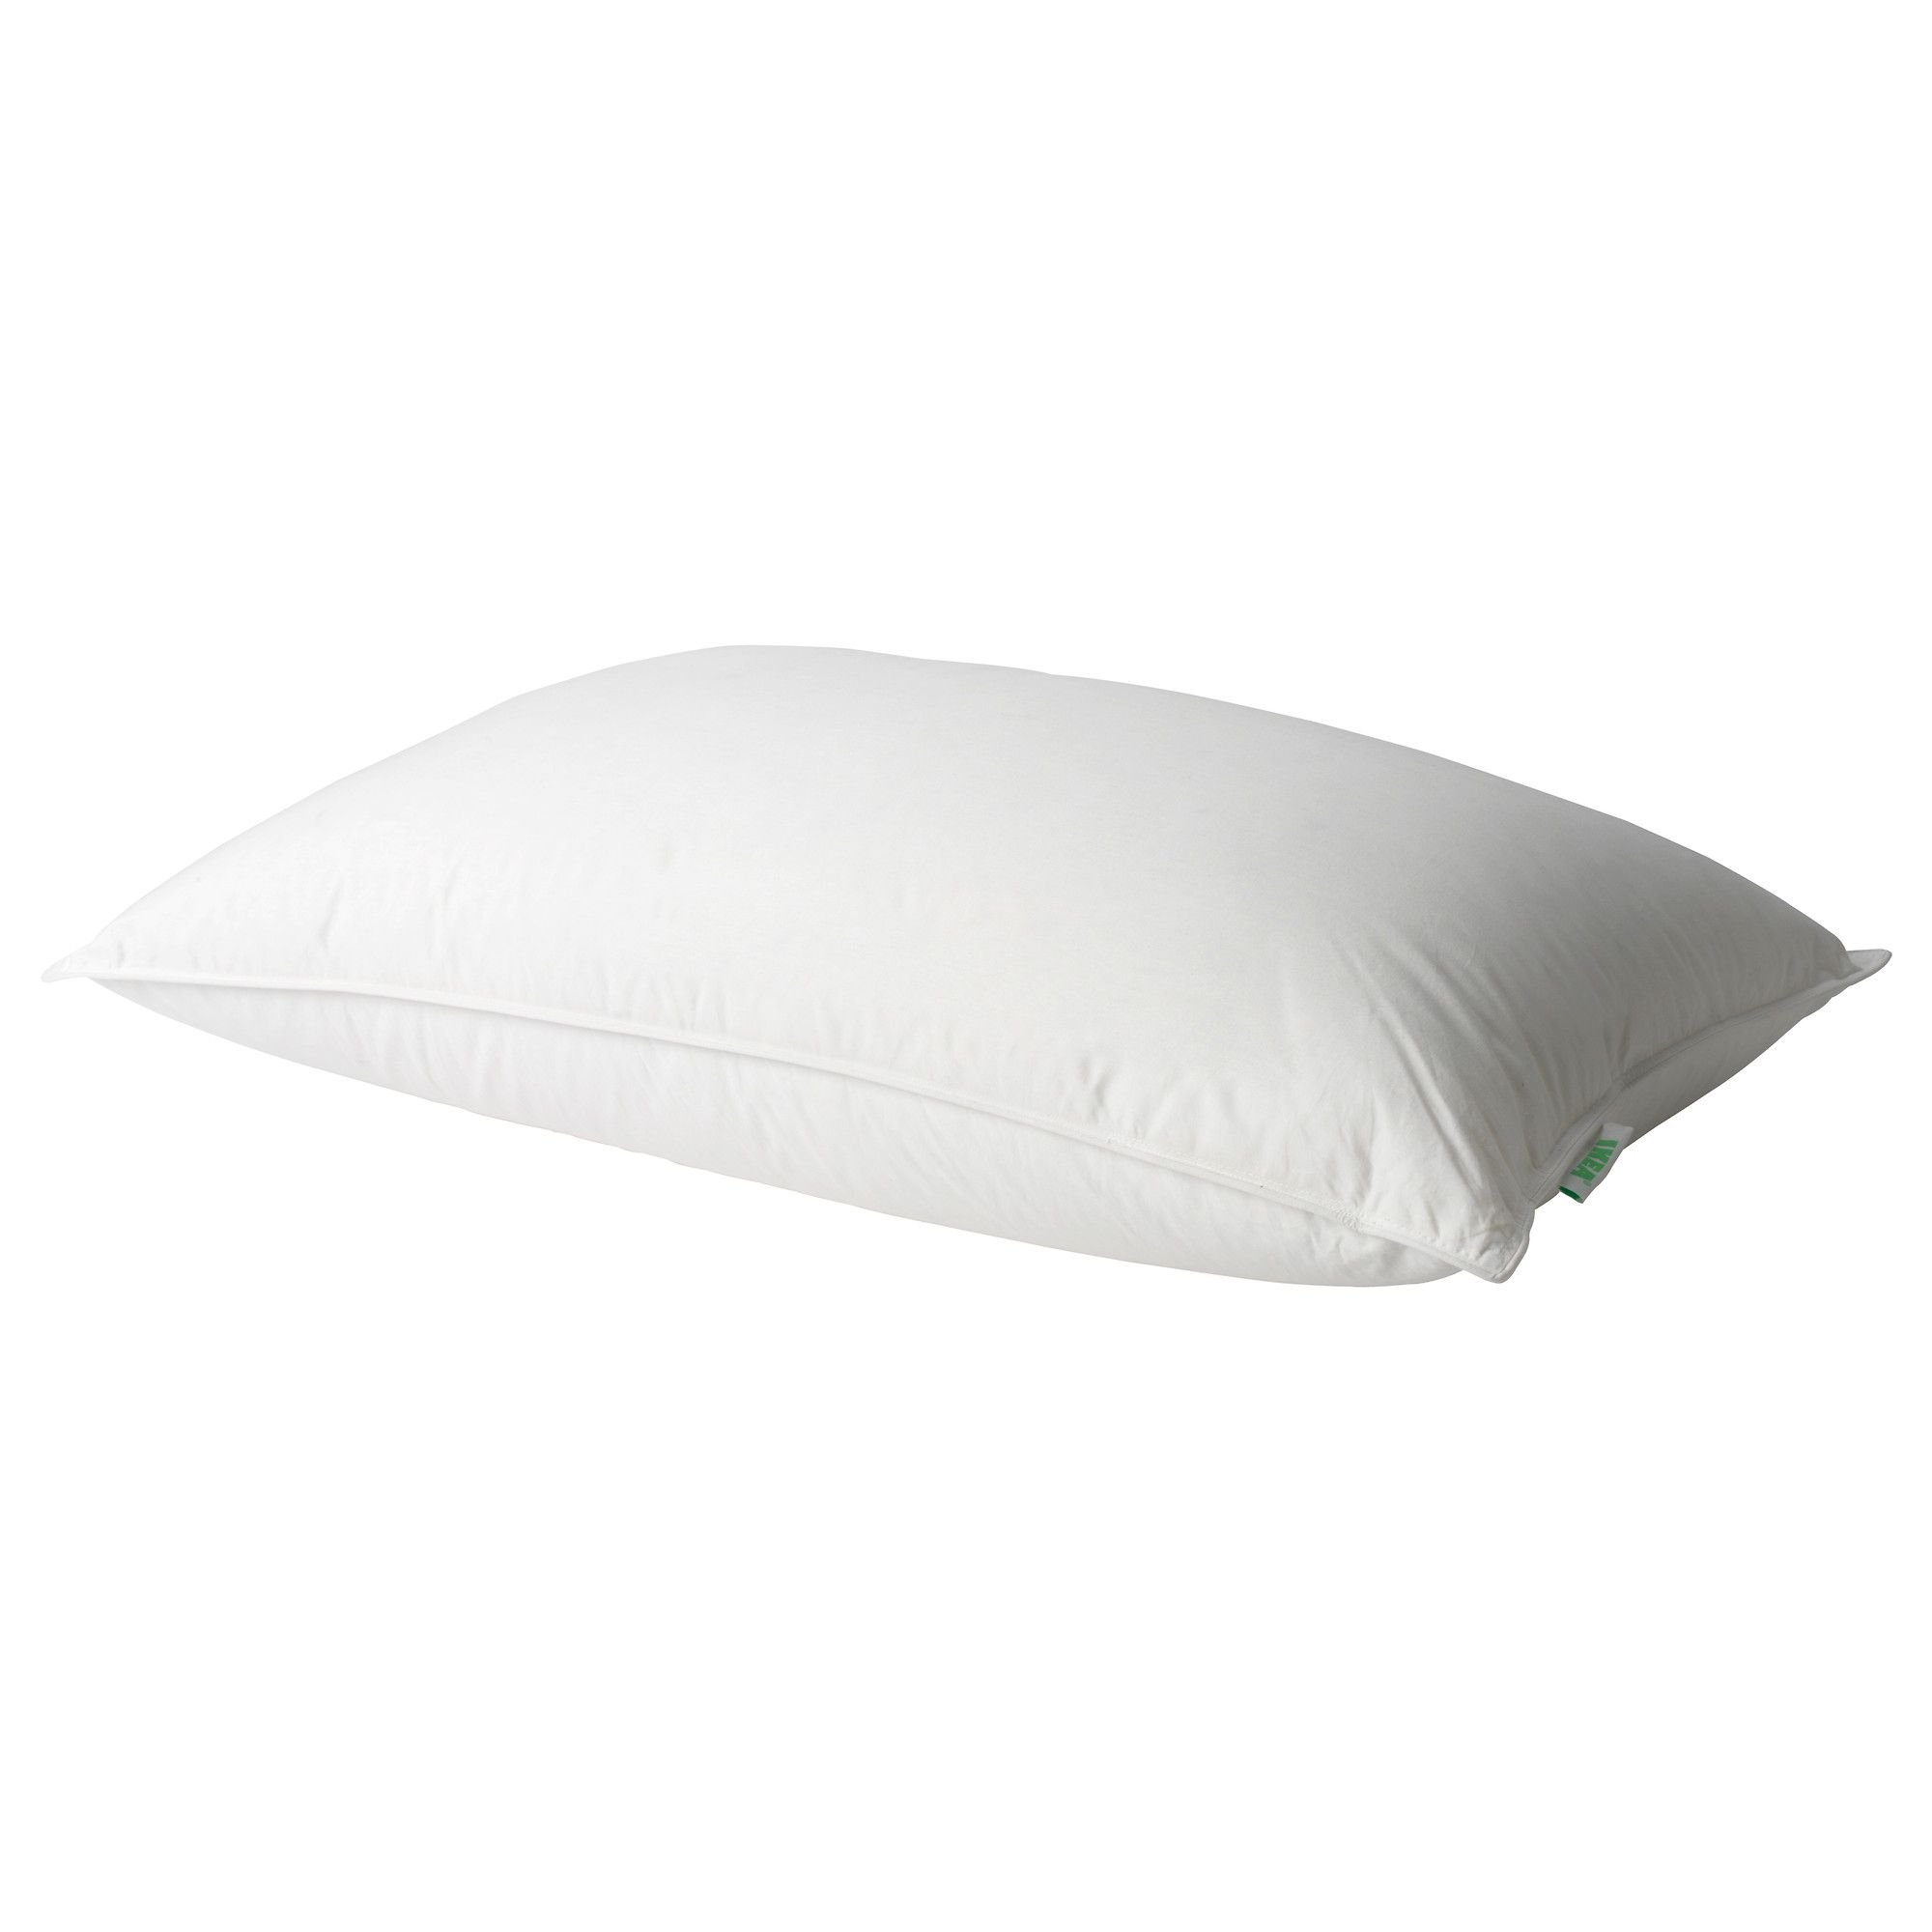 cushion pillow hassel beds products en sleeper shoplinkz gosa side ikea